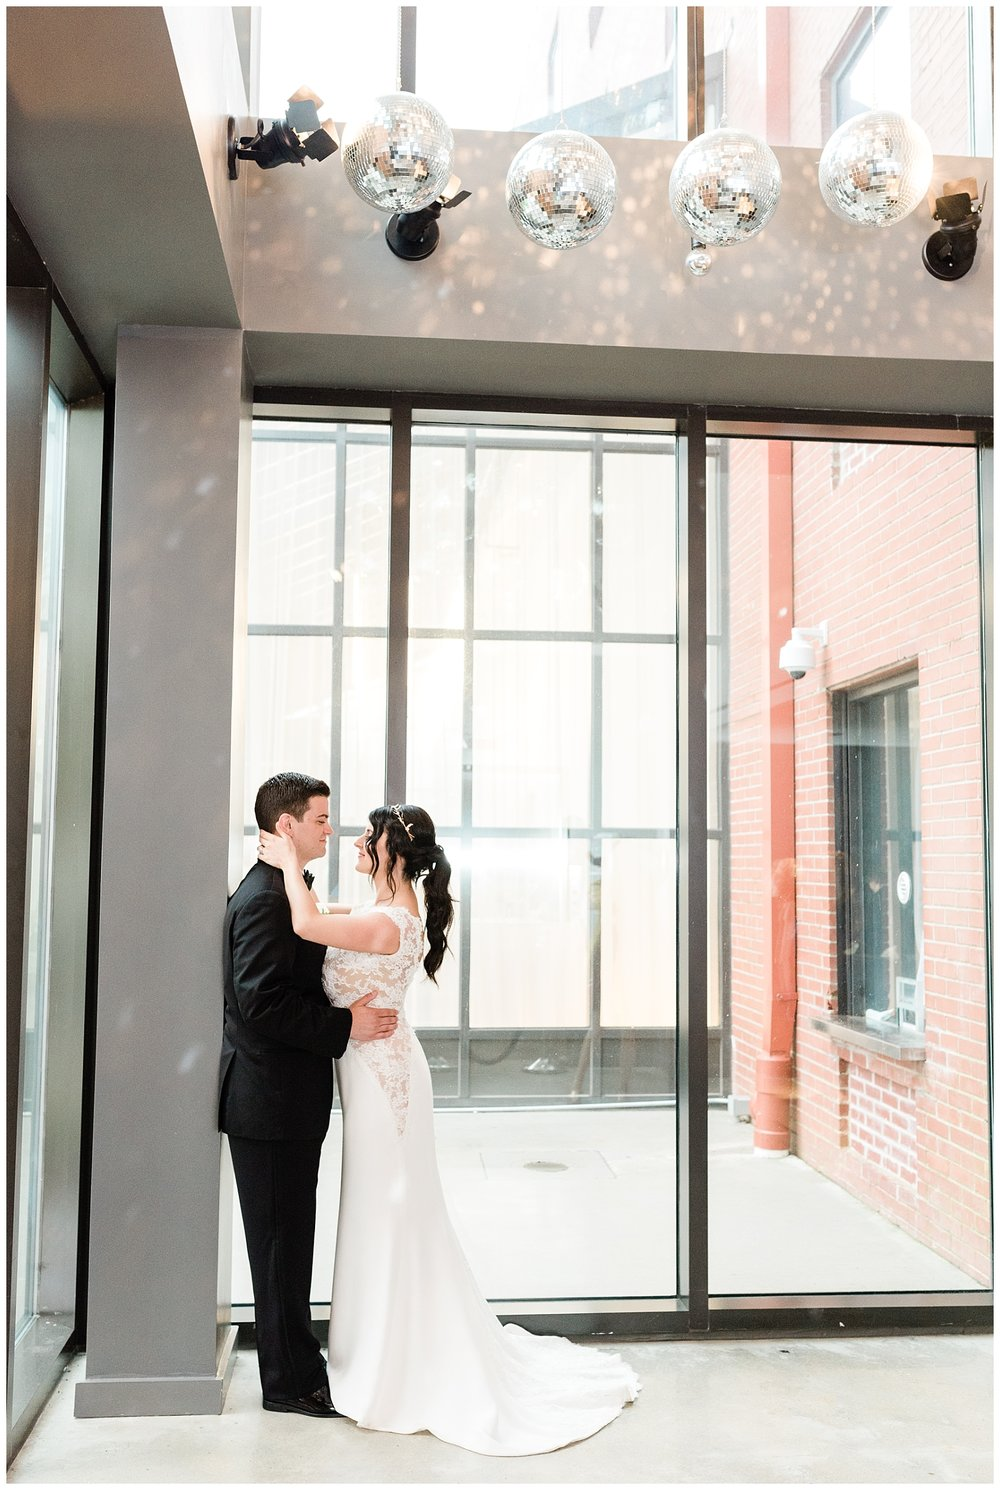 The-Asbury-Hotel-Asbury-Park-NJ-Shore-Boho-Rose-Gold-Wedding-Photo-_0117.jpg